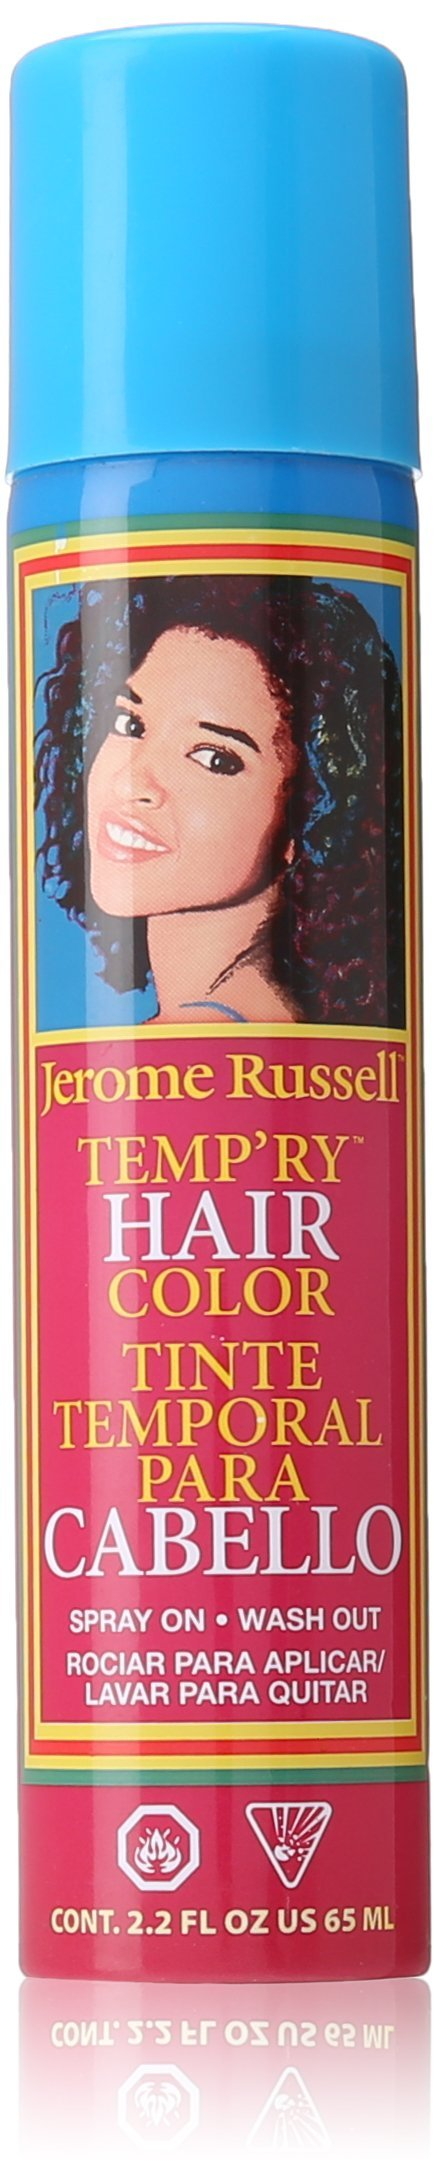 Jerome Russell Tempry Hair Color Spray, Dark Blonde, 2.2 oz.